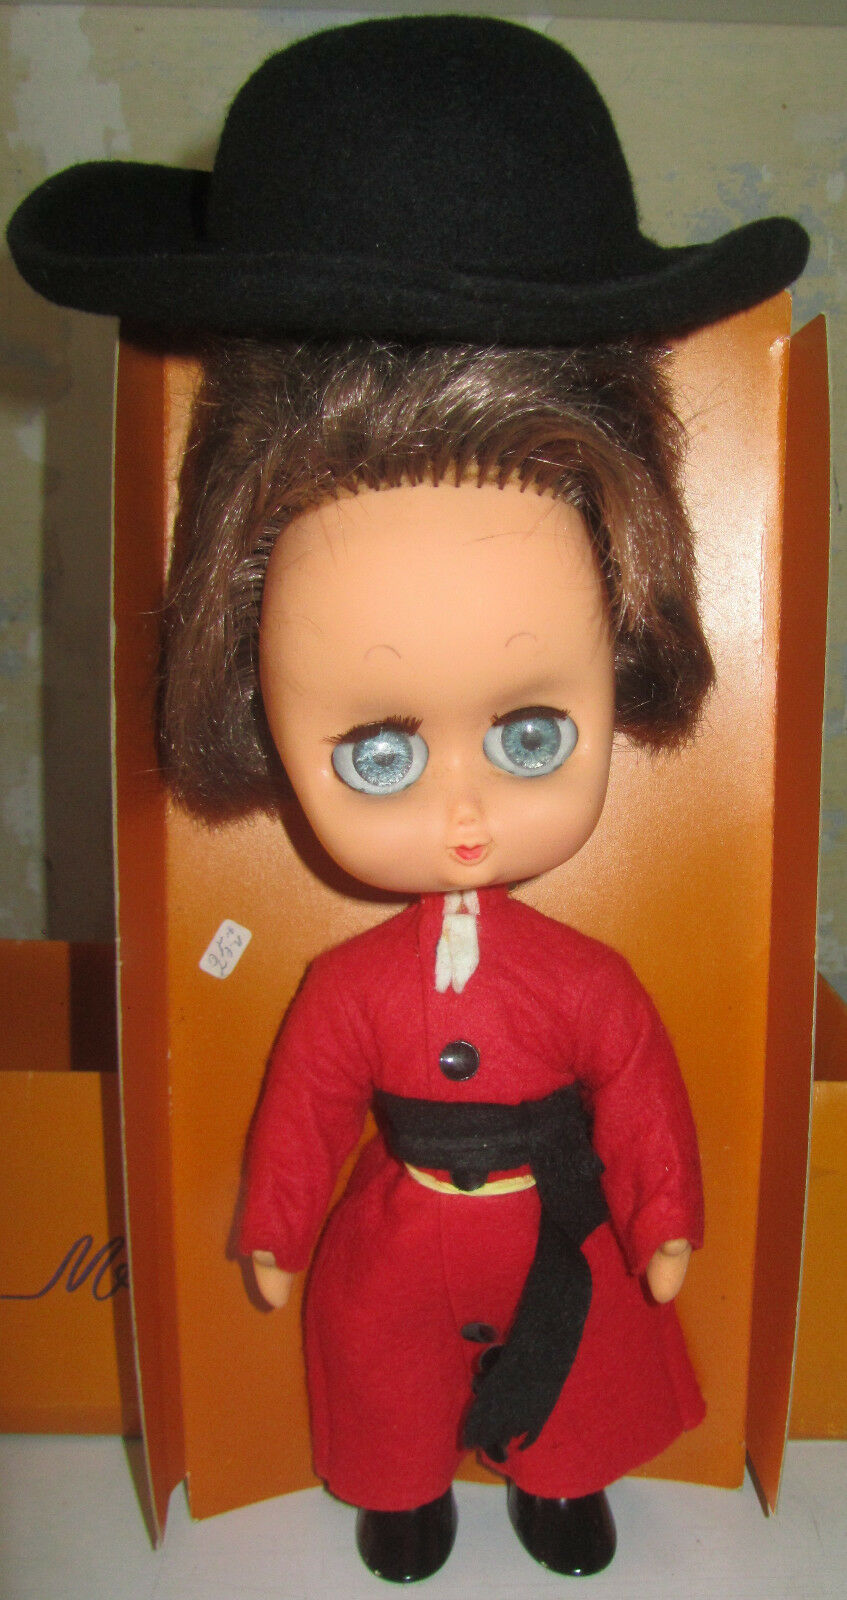 Bambola Maura Creazioni Cardinale Doll flirty big google eyes made in italy DEDO